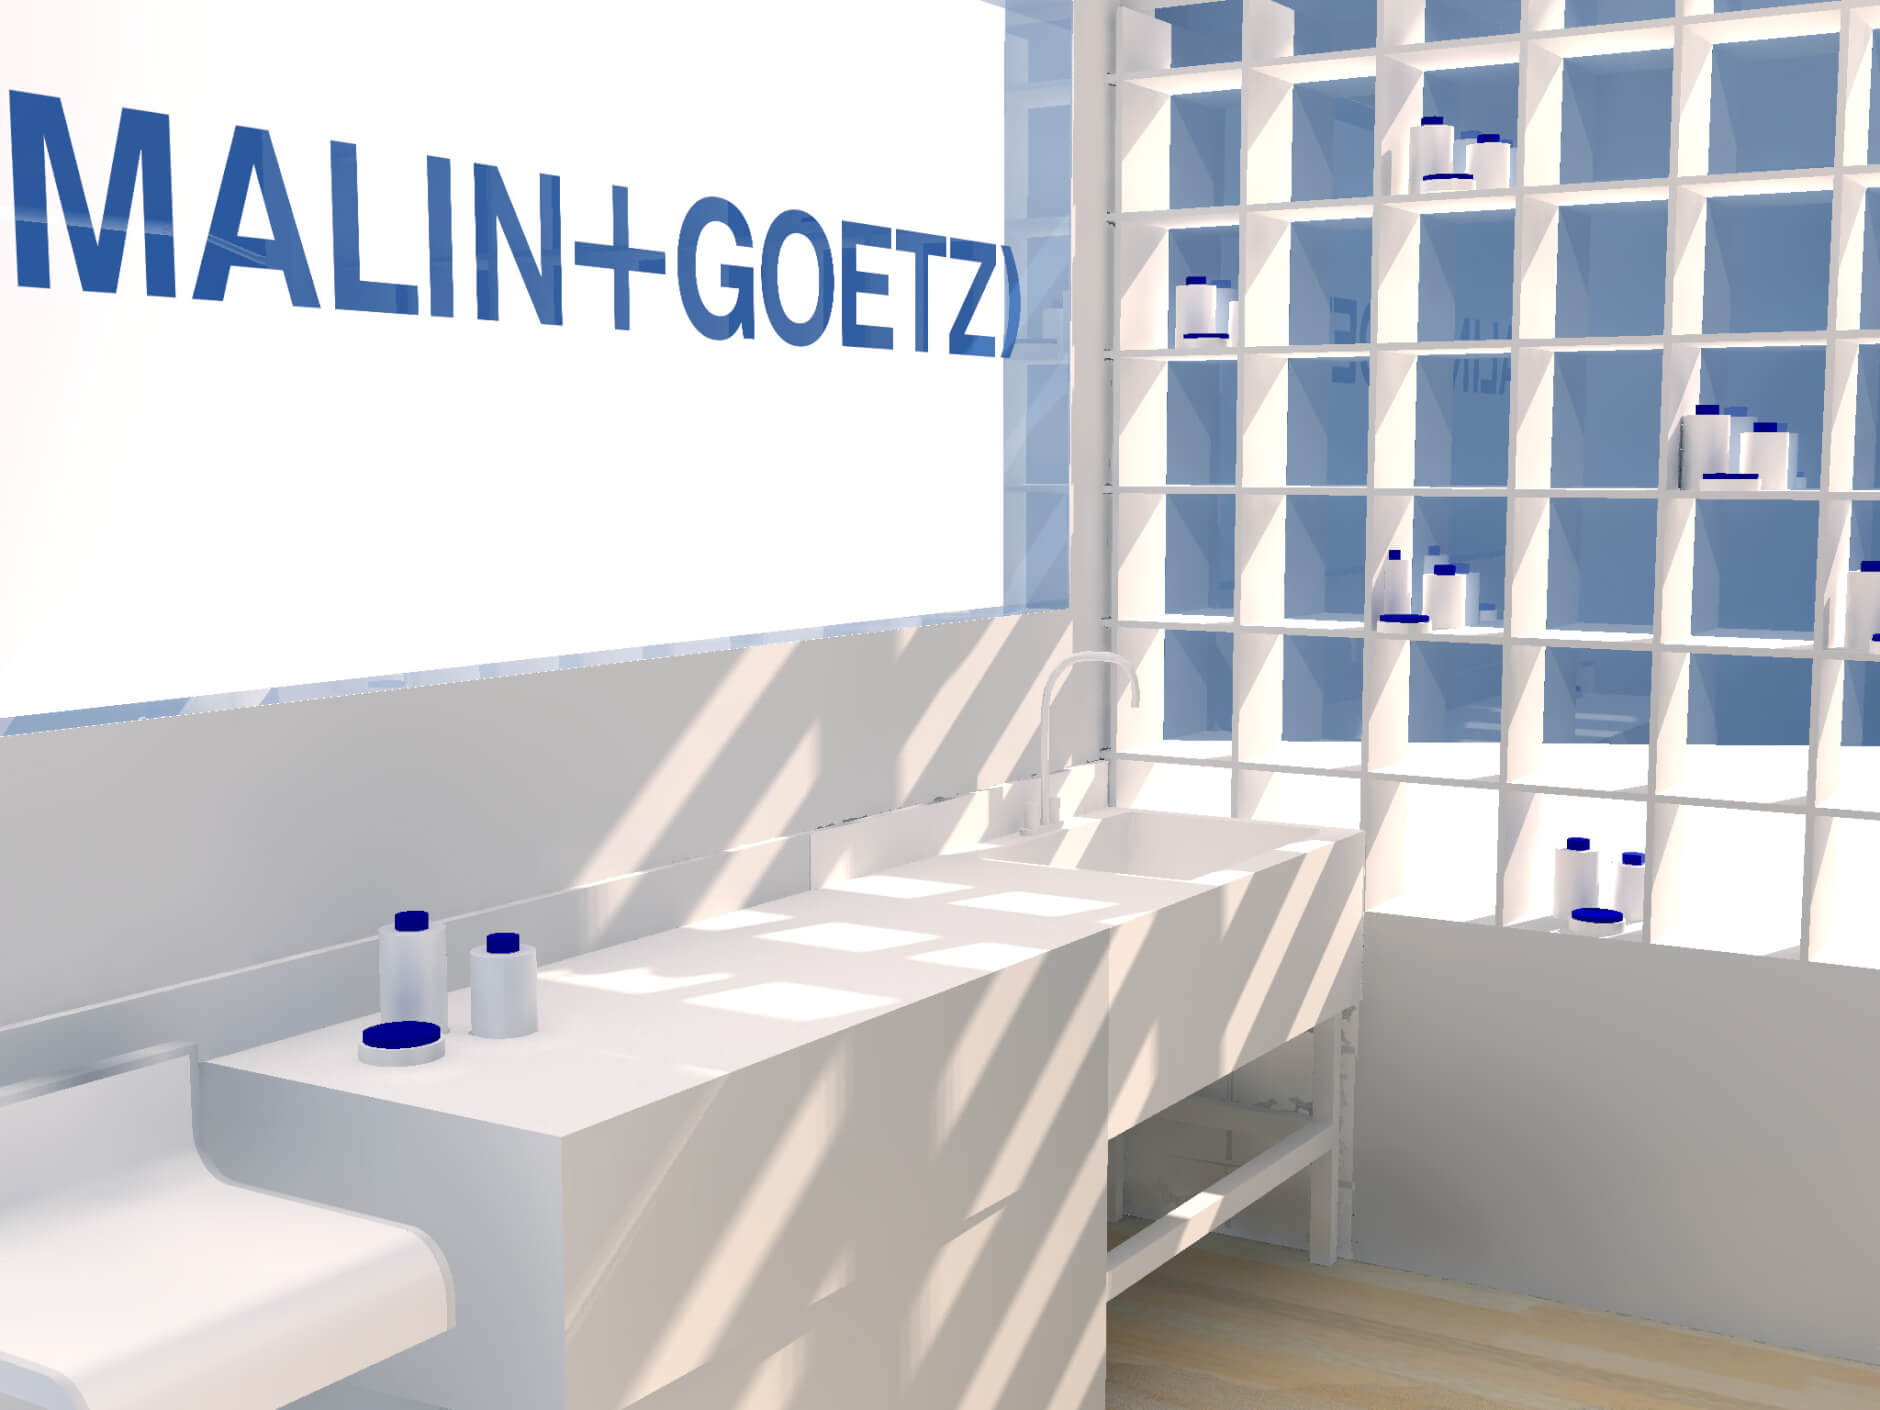 Helen Marcotte from Malin and Goetz